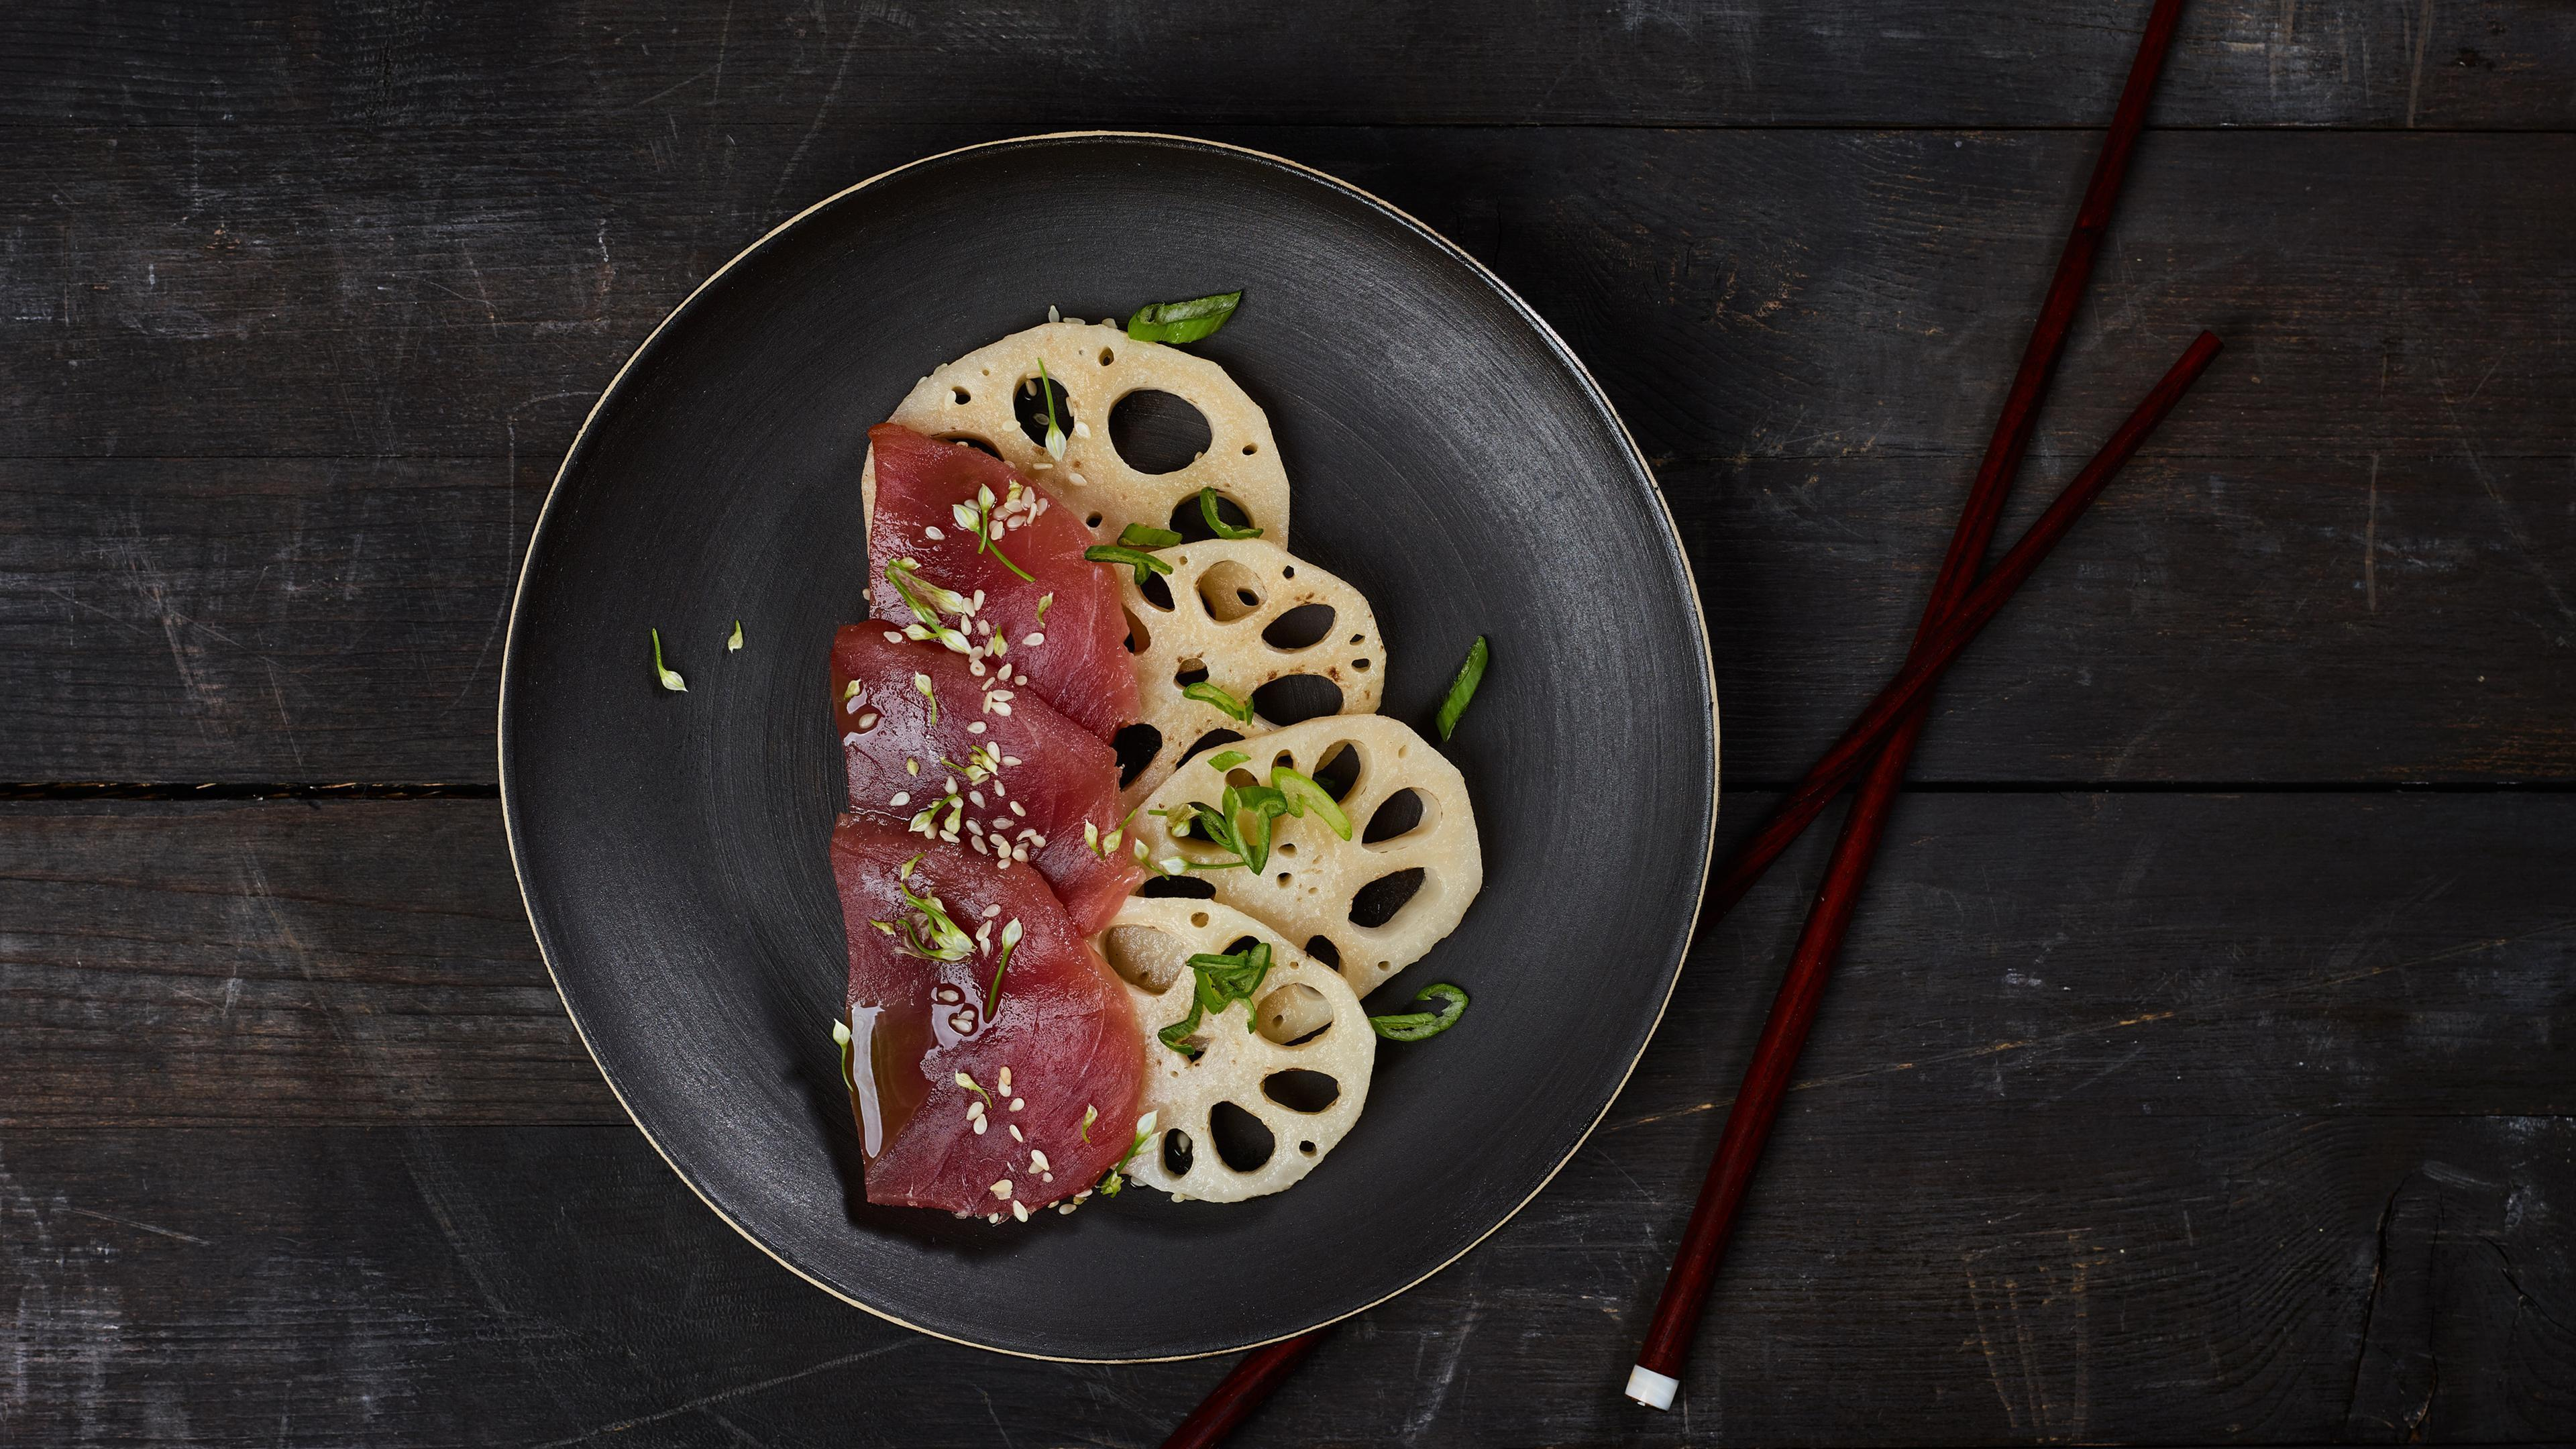 Tuna sashimi with lotus root